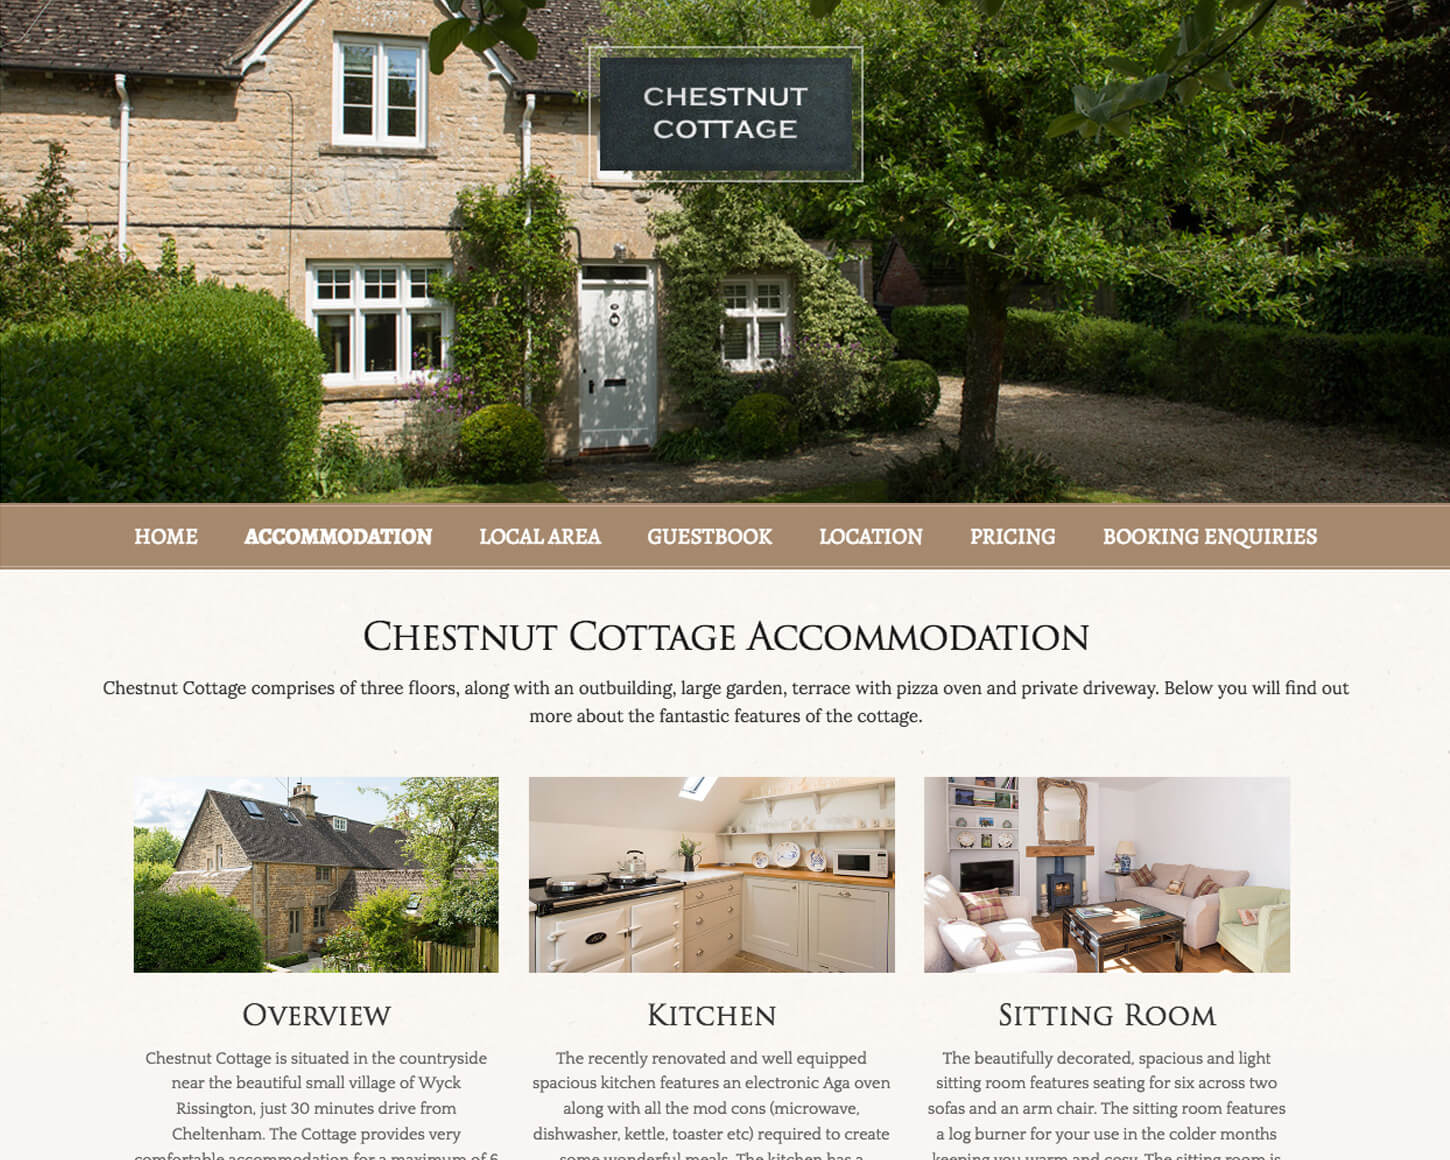 Chestnut Cottage website